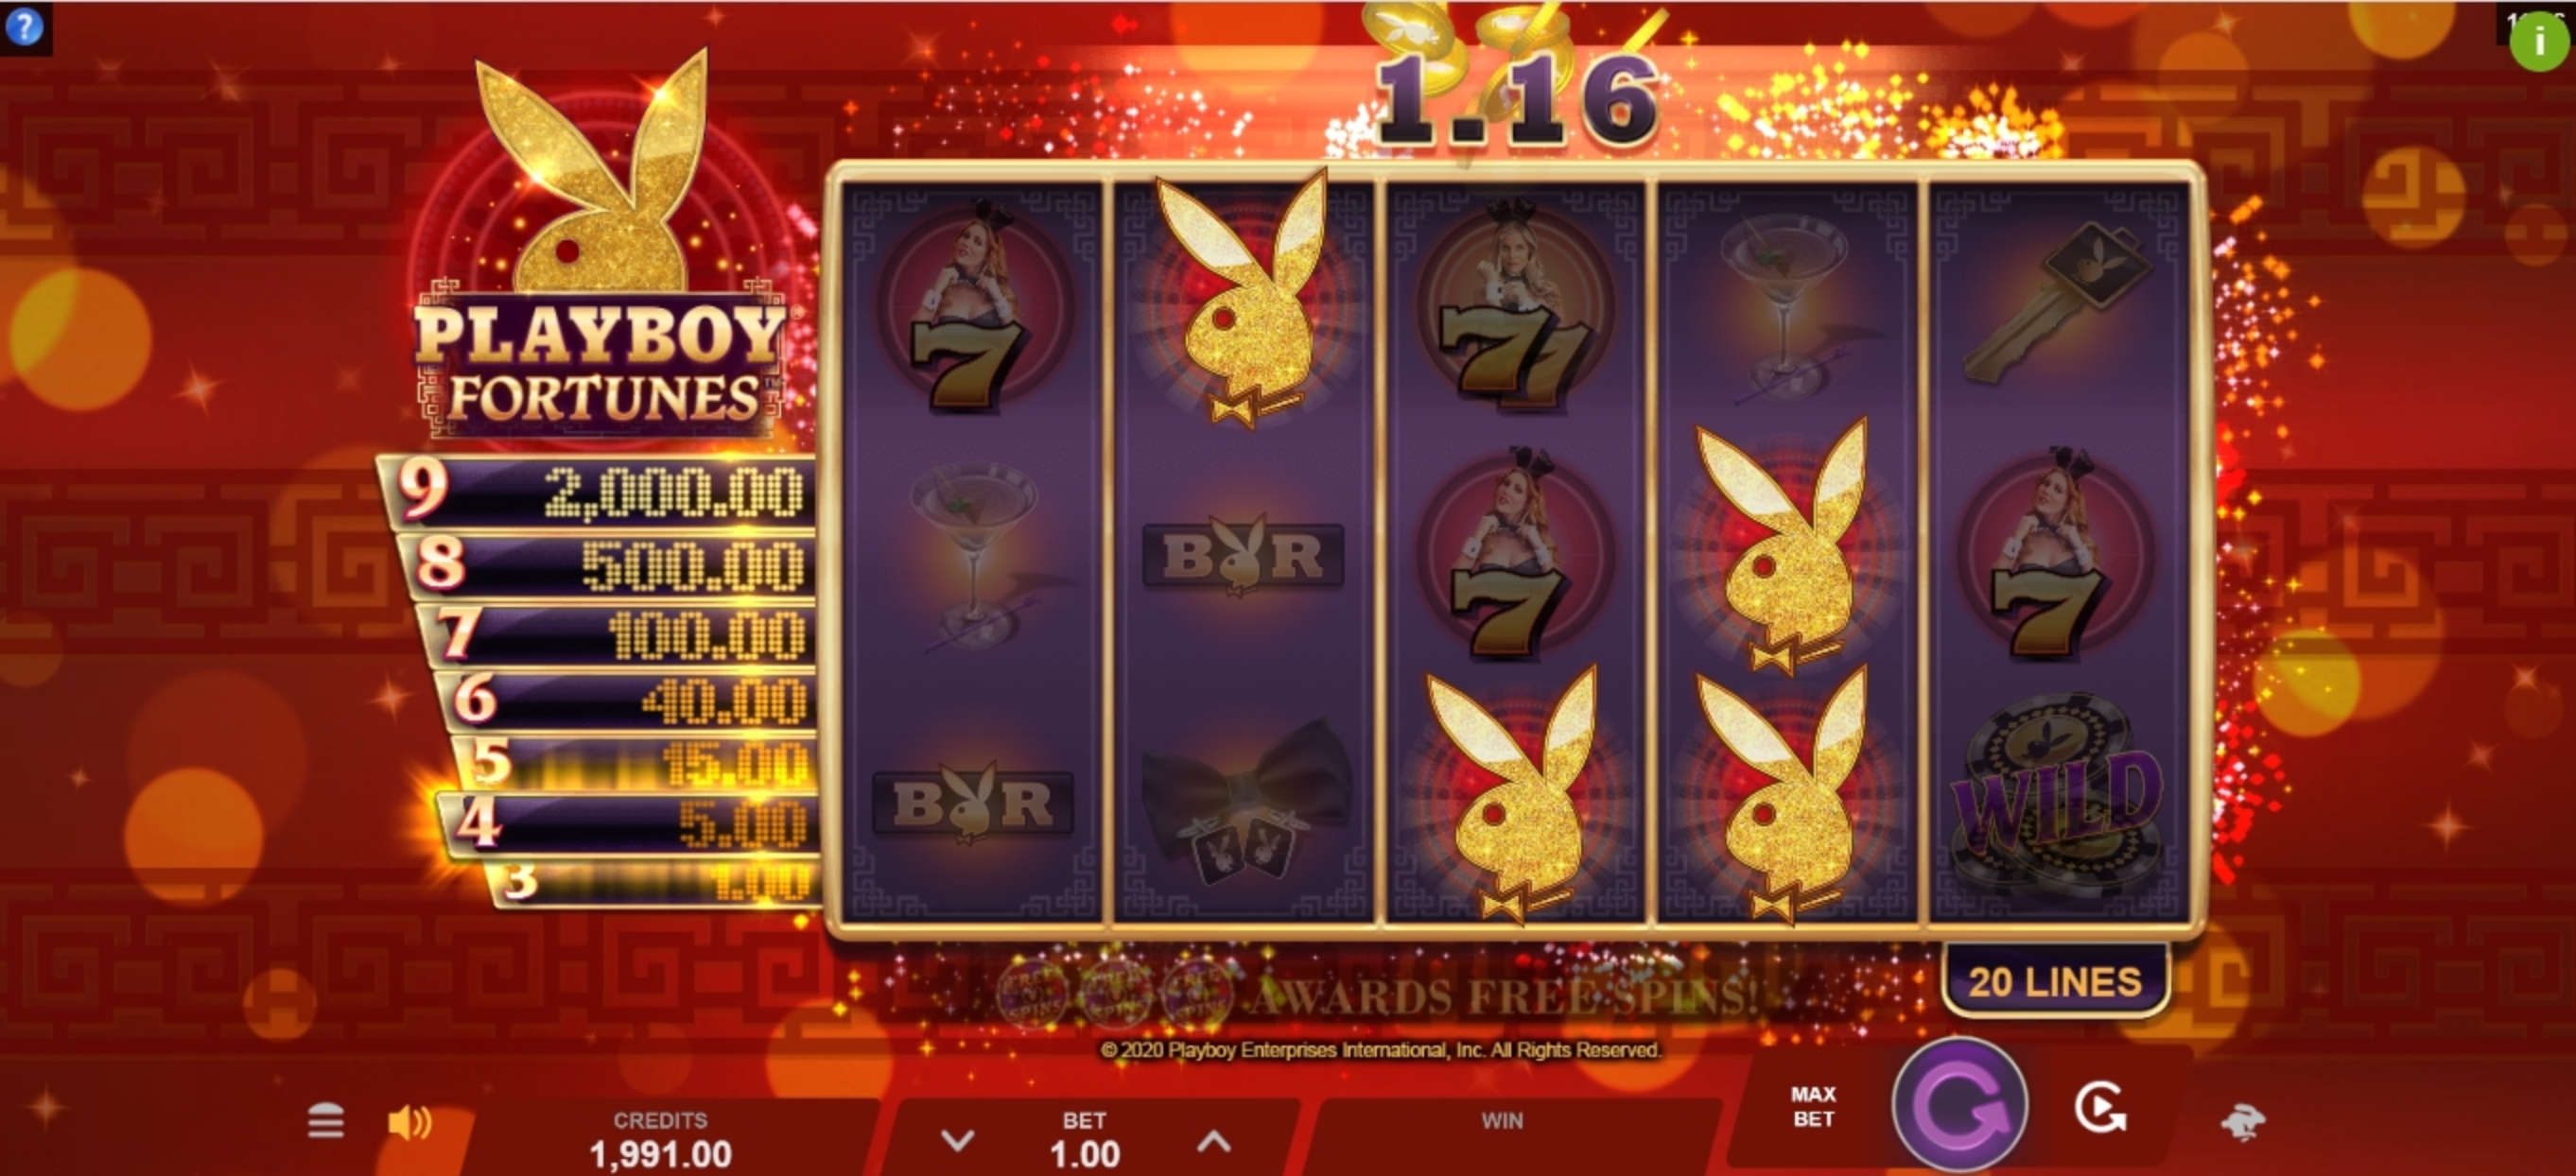 Win Money in Playboy Fortunes Free Slot Game by Gameburger Studios